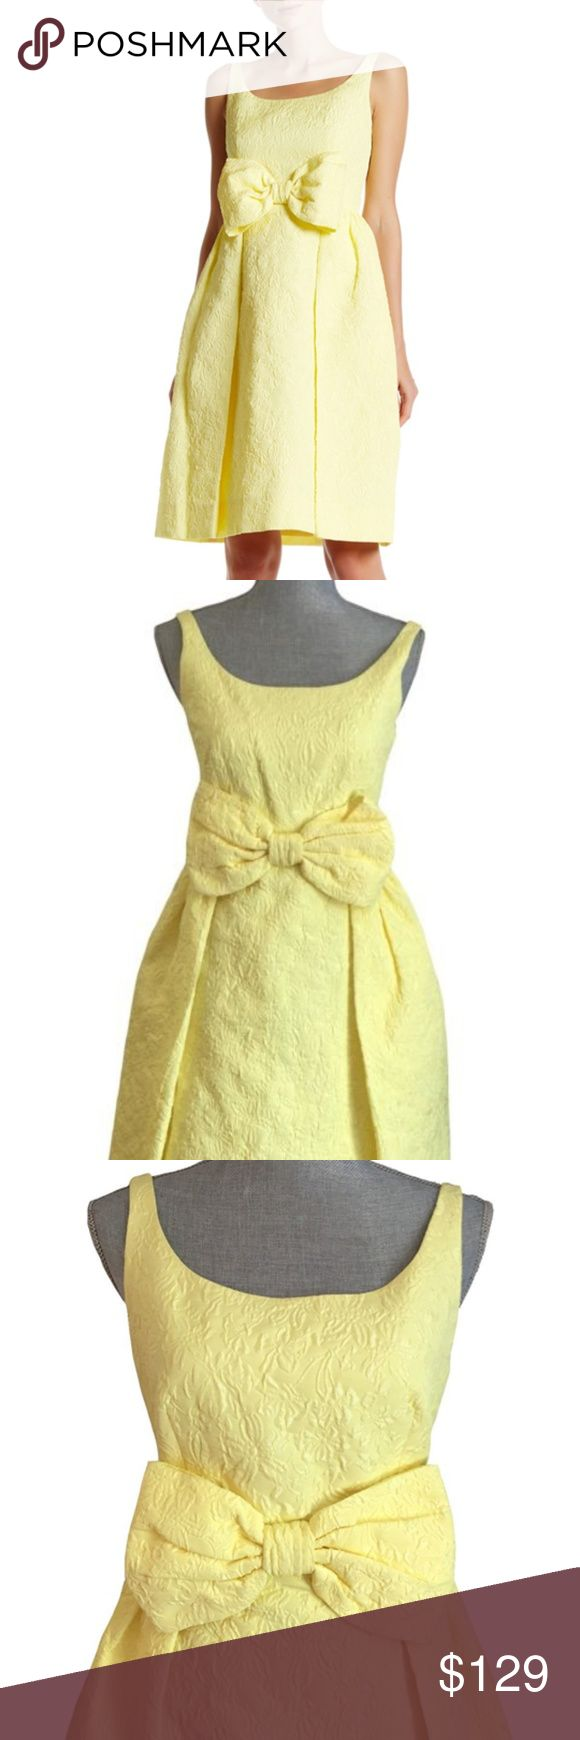 """Kate Spade Yellow Jacquard Floral Bow Dress Size 2 Kate Spade Tavor Dress Size 2 - So Pretty!   • Authentic! • New with tags $598.00 • Bust 33"""" • Waist 27""""   • Length 40"""" • Stretch polyester • Lemon Soufflé - yellow • Textured floral jacquard • Square neck • Sleeveless • Prominent bow front • Fitted bodice • Flared skirt w/pockets • Knee Length hem • Back zip close • Fully lined kate spade Dresses Midi"""